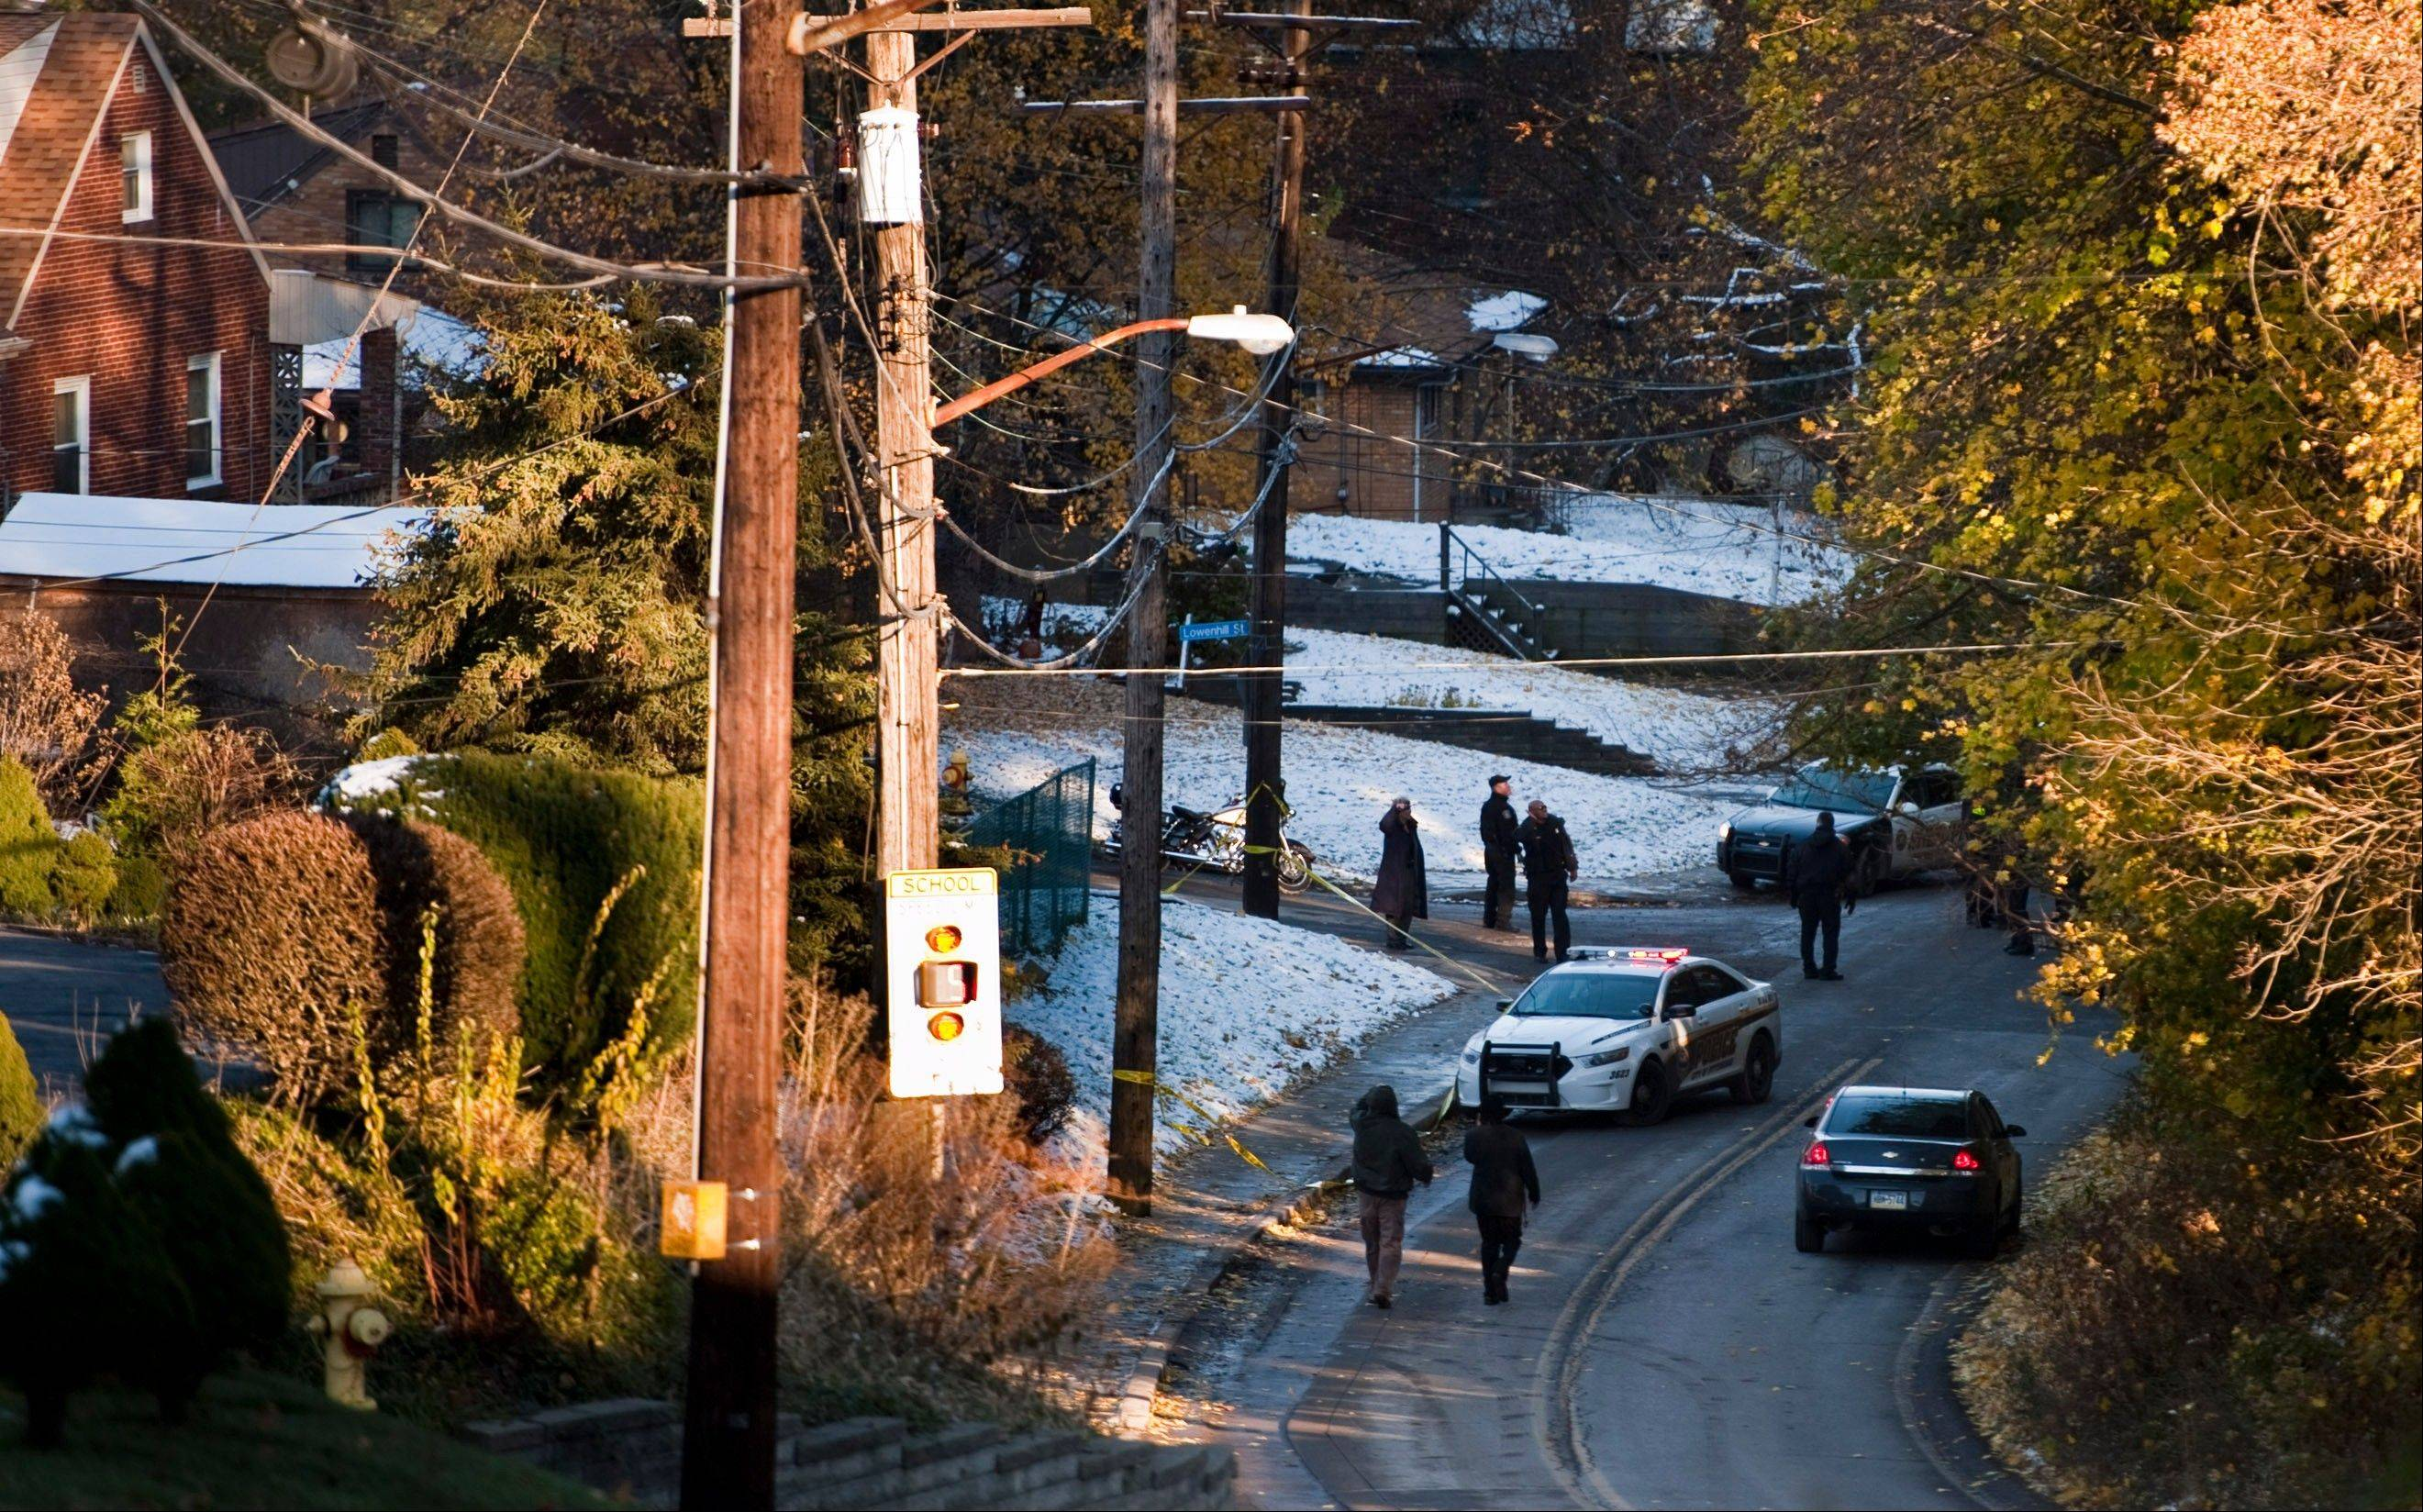 Police are seen in an area near Brashear High School in PIttsburgh on Wednesday after three students were shot outside the Pittsburgh high school.